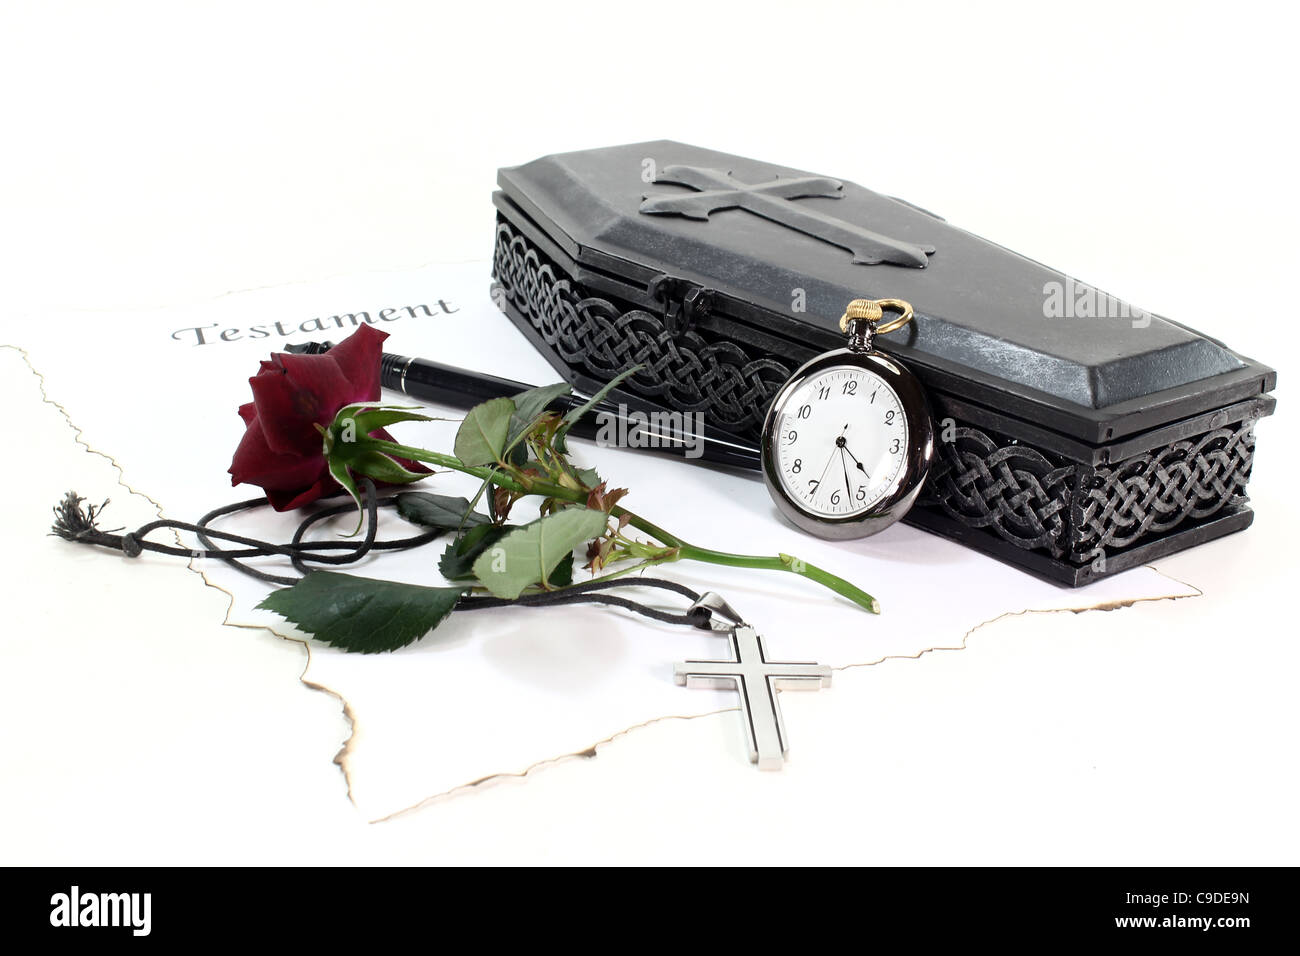 Testament with coffin, a red rose, clock, pen and cross - Stock Image